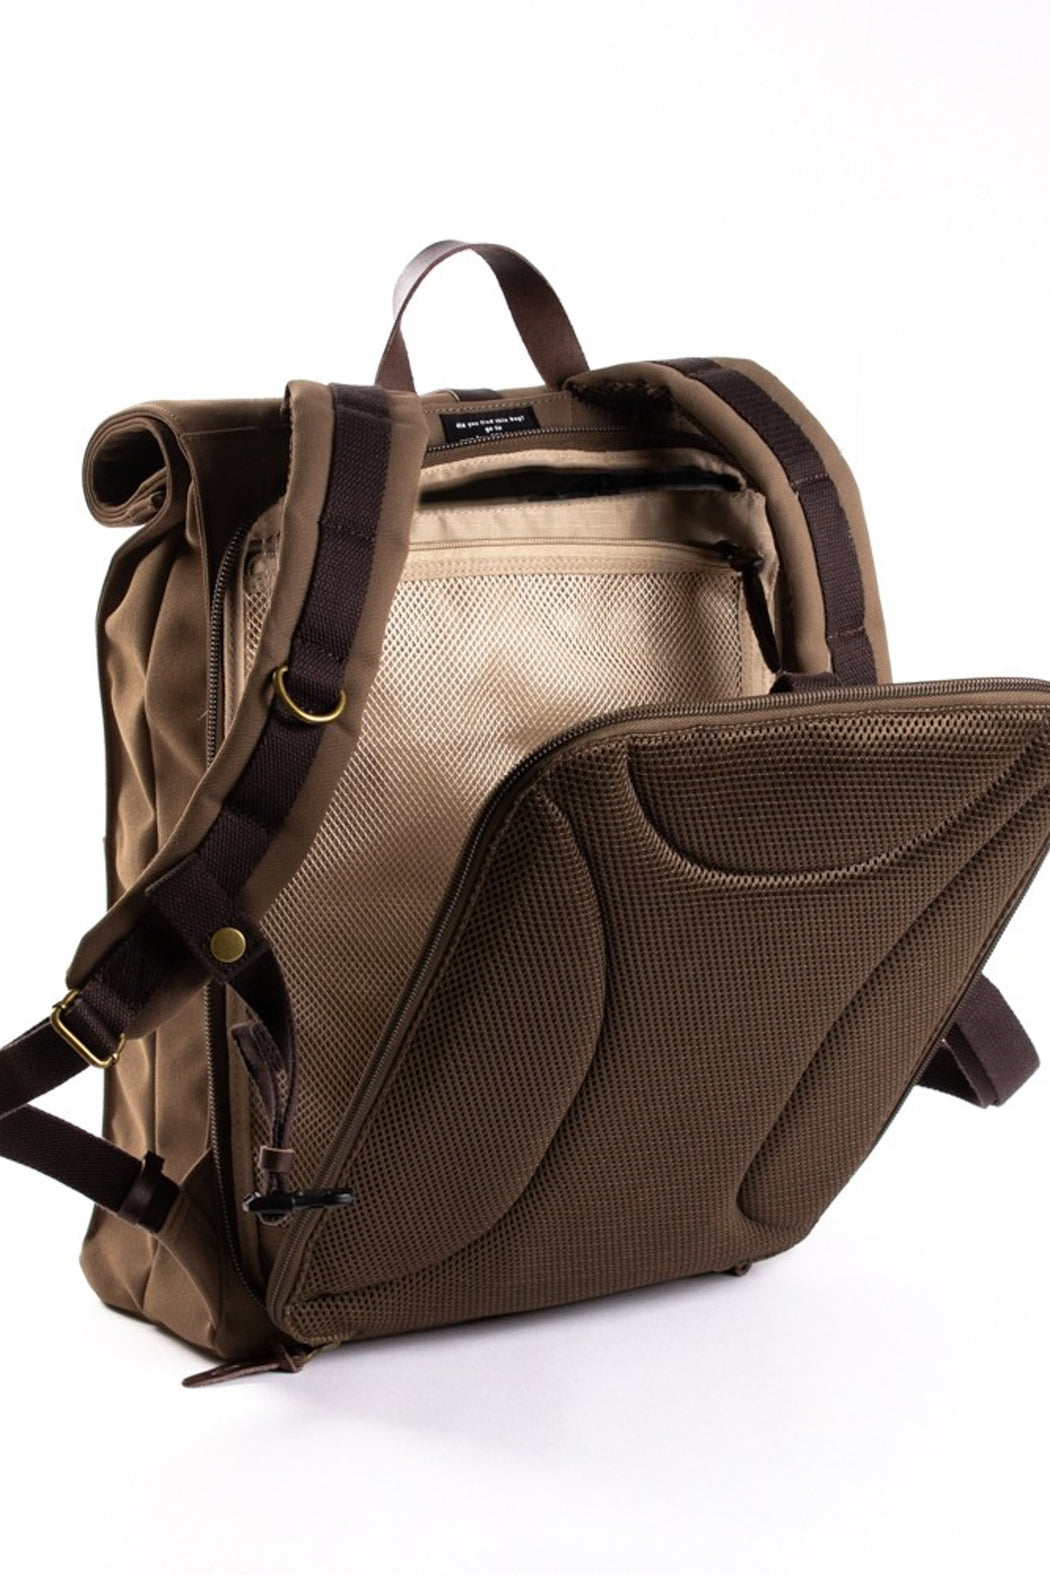 ALEX 24h Backpack olive brown / brown